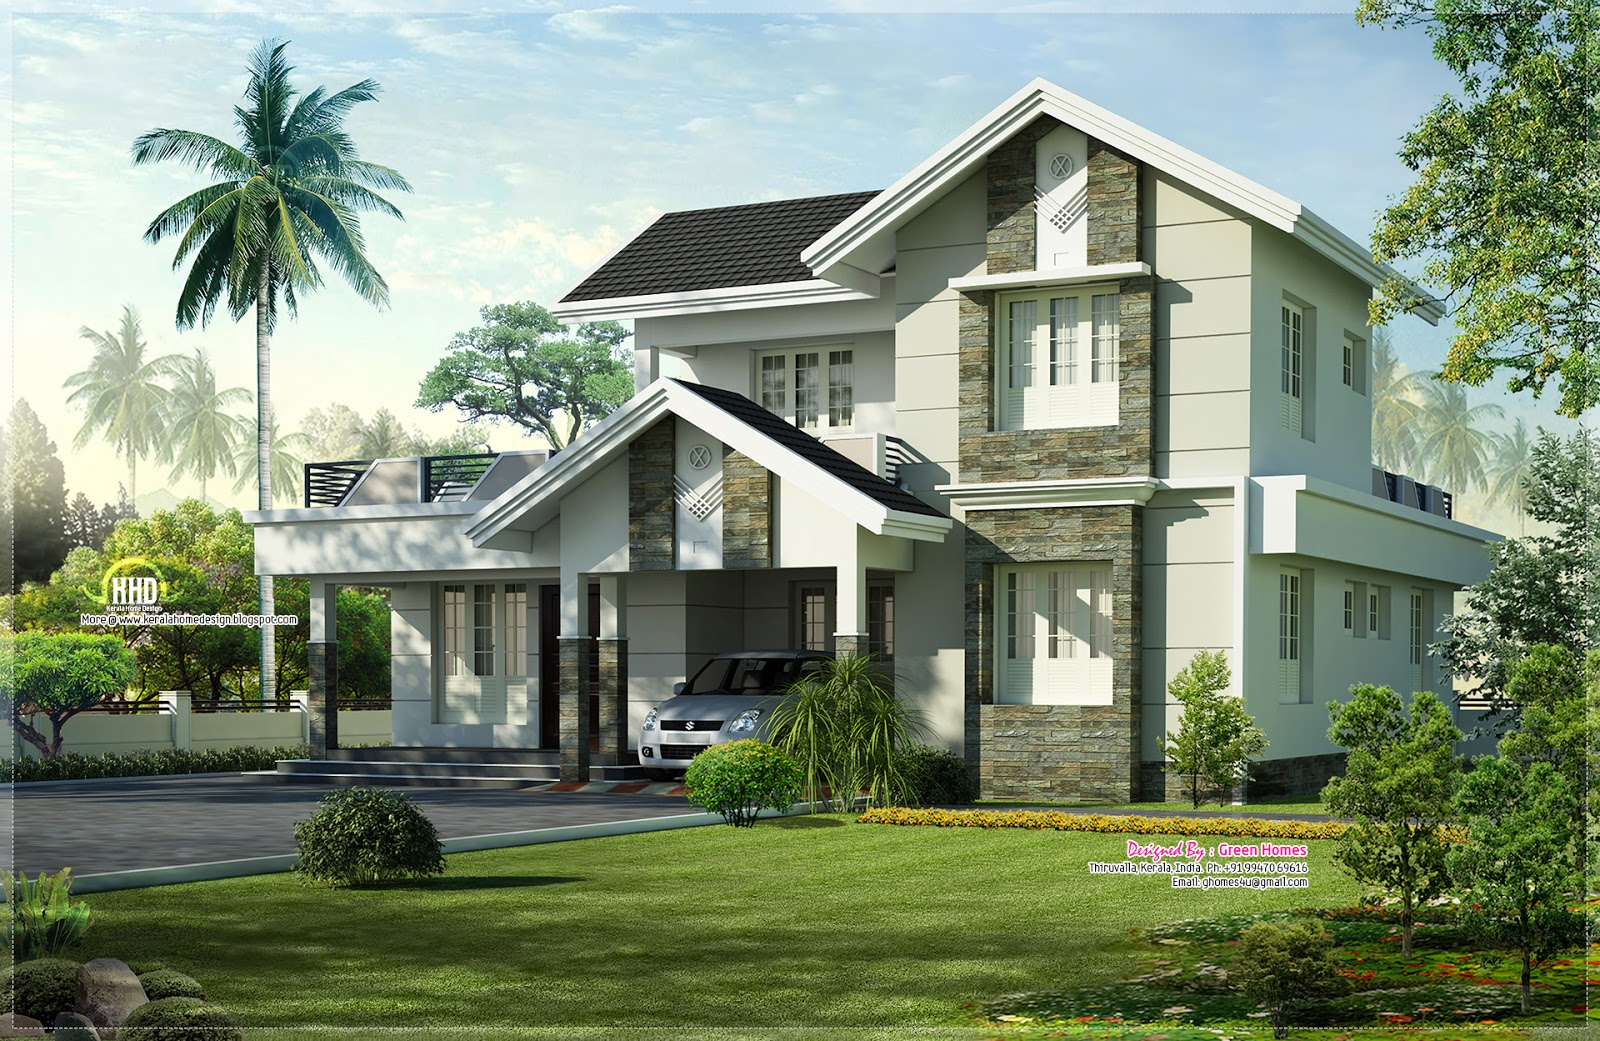 1975 nice home exterior design kerala home for Beautiful house images